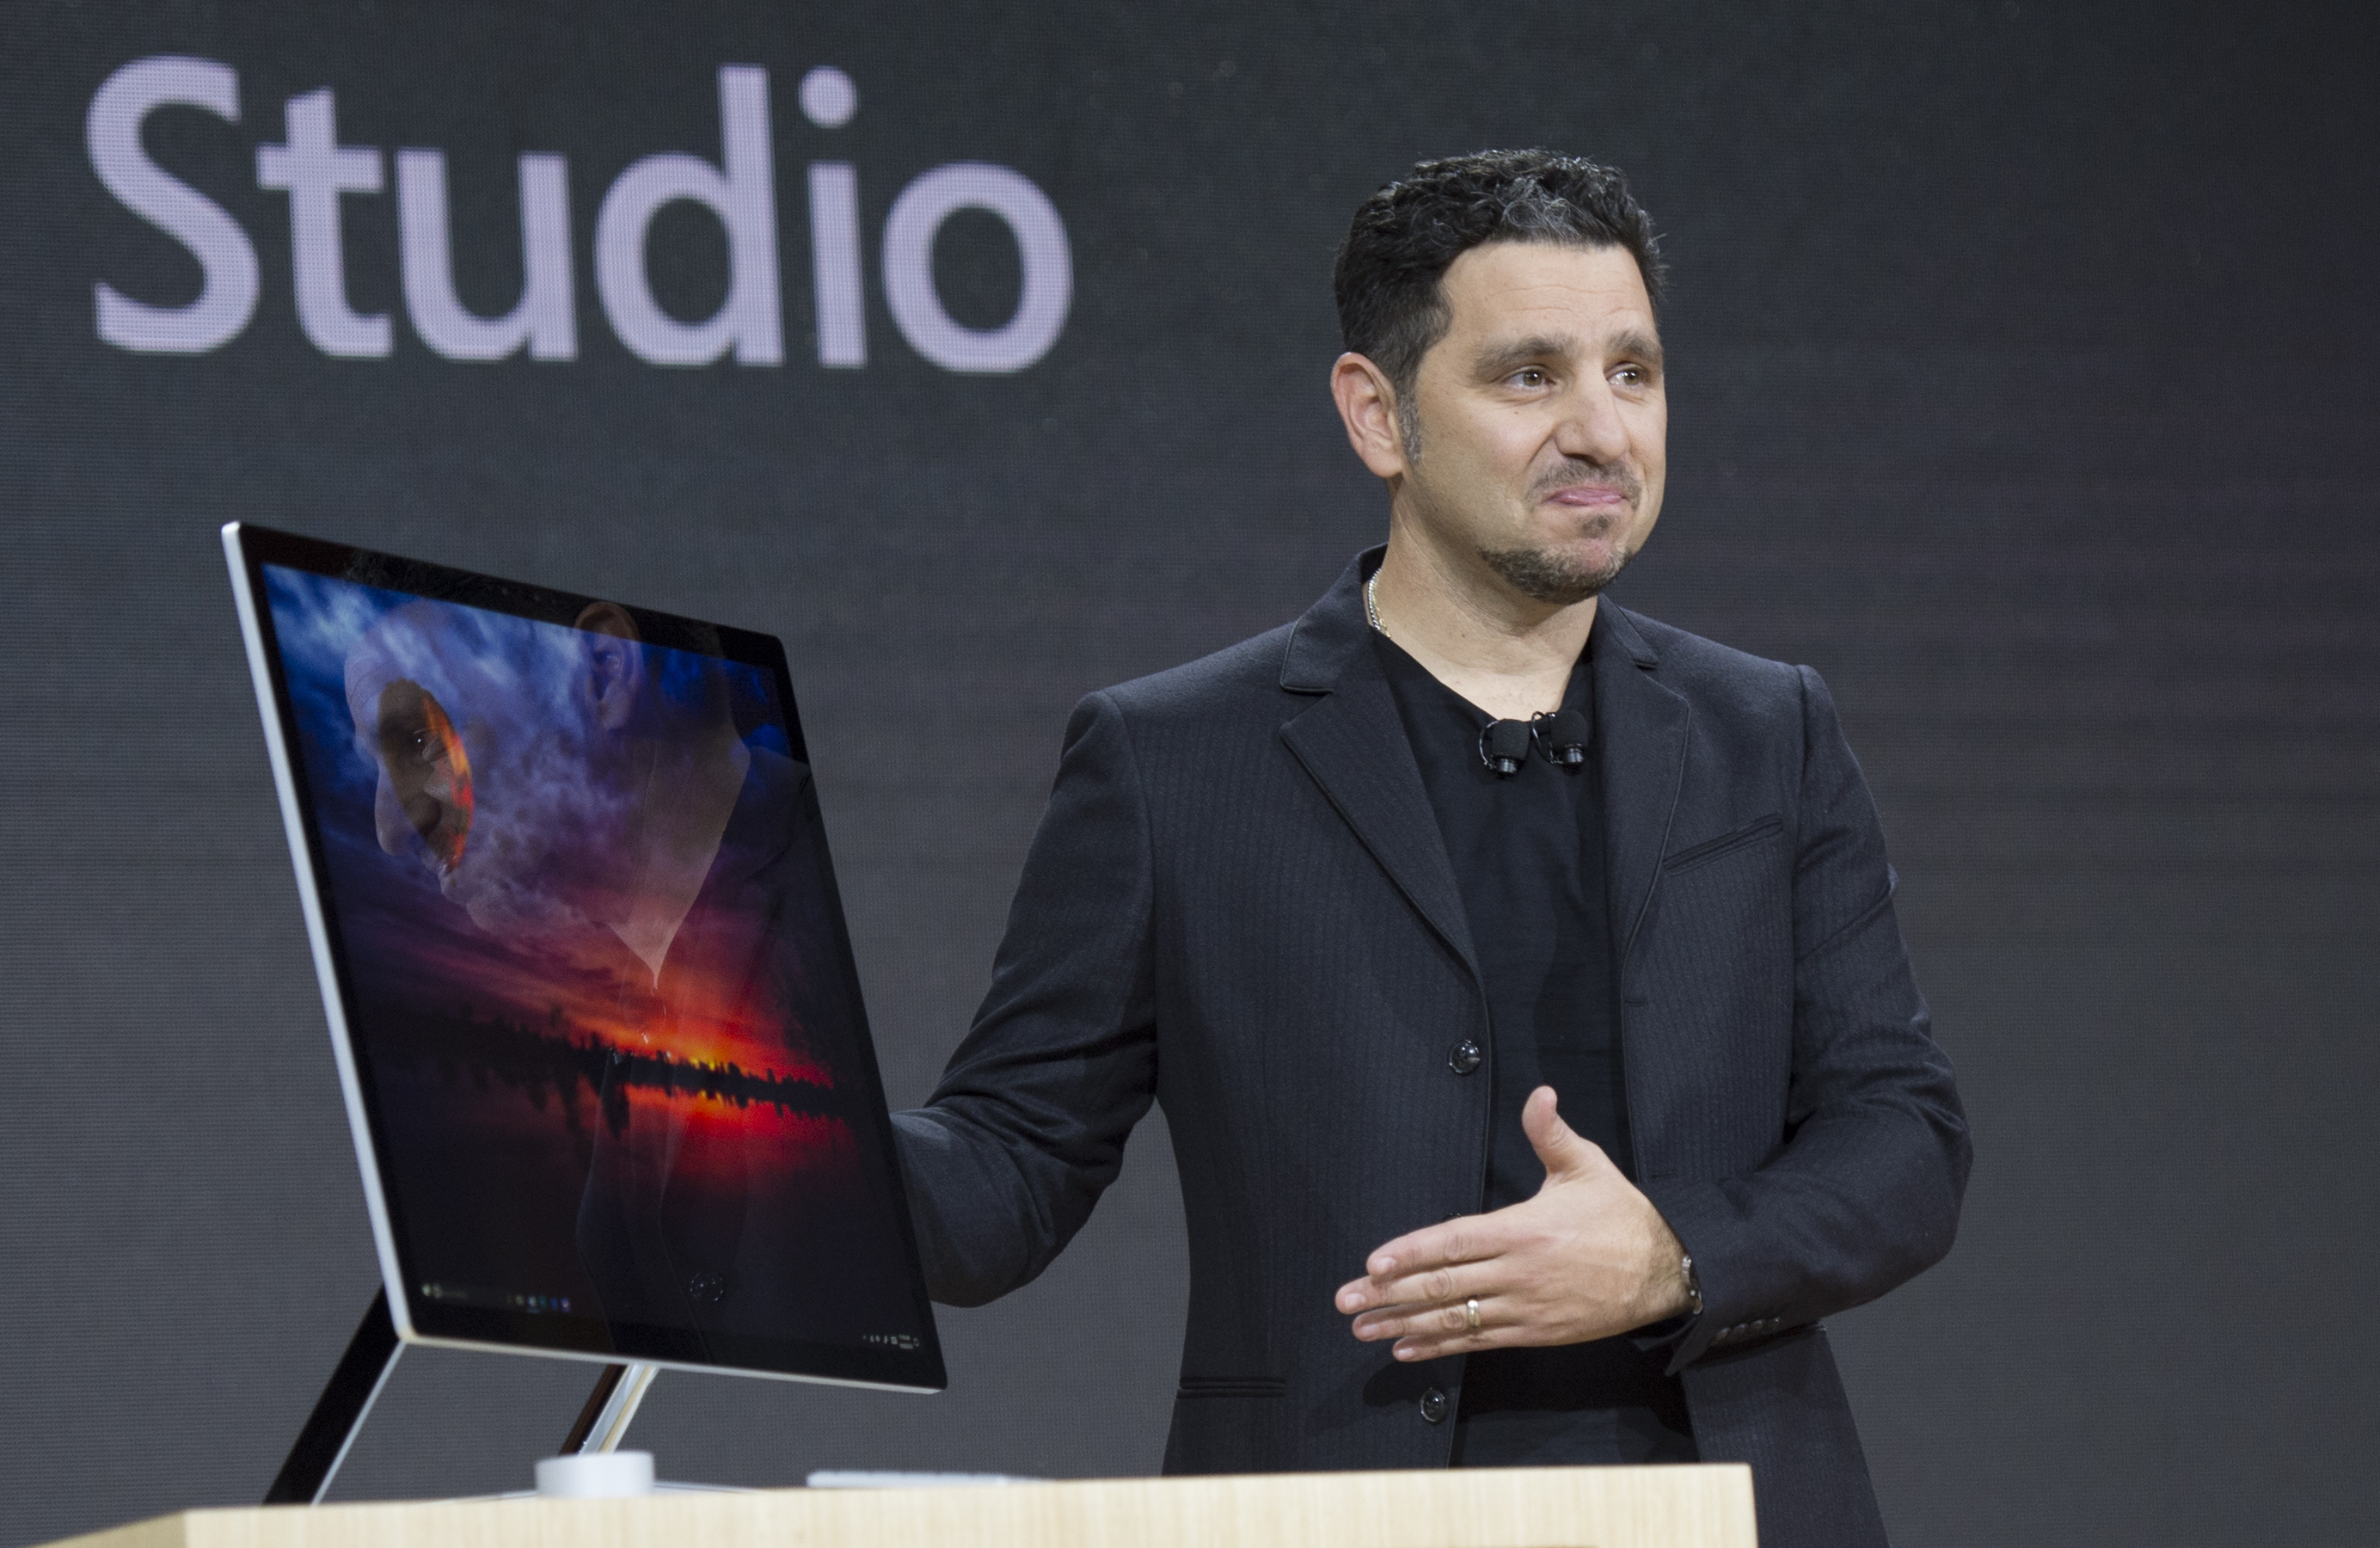 Microsoft Corporate VP of Devices, Panos Panay introduces Microsoft Surface Studio at a Microsoft news conference October 26, 2016 in New York.